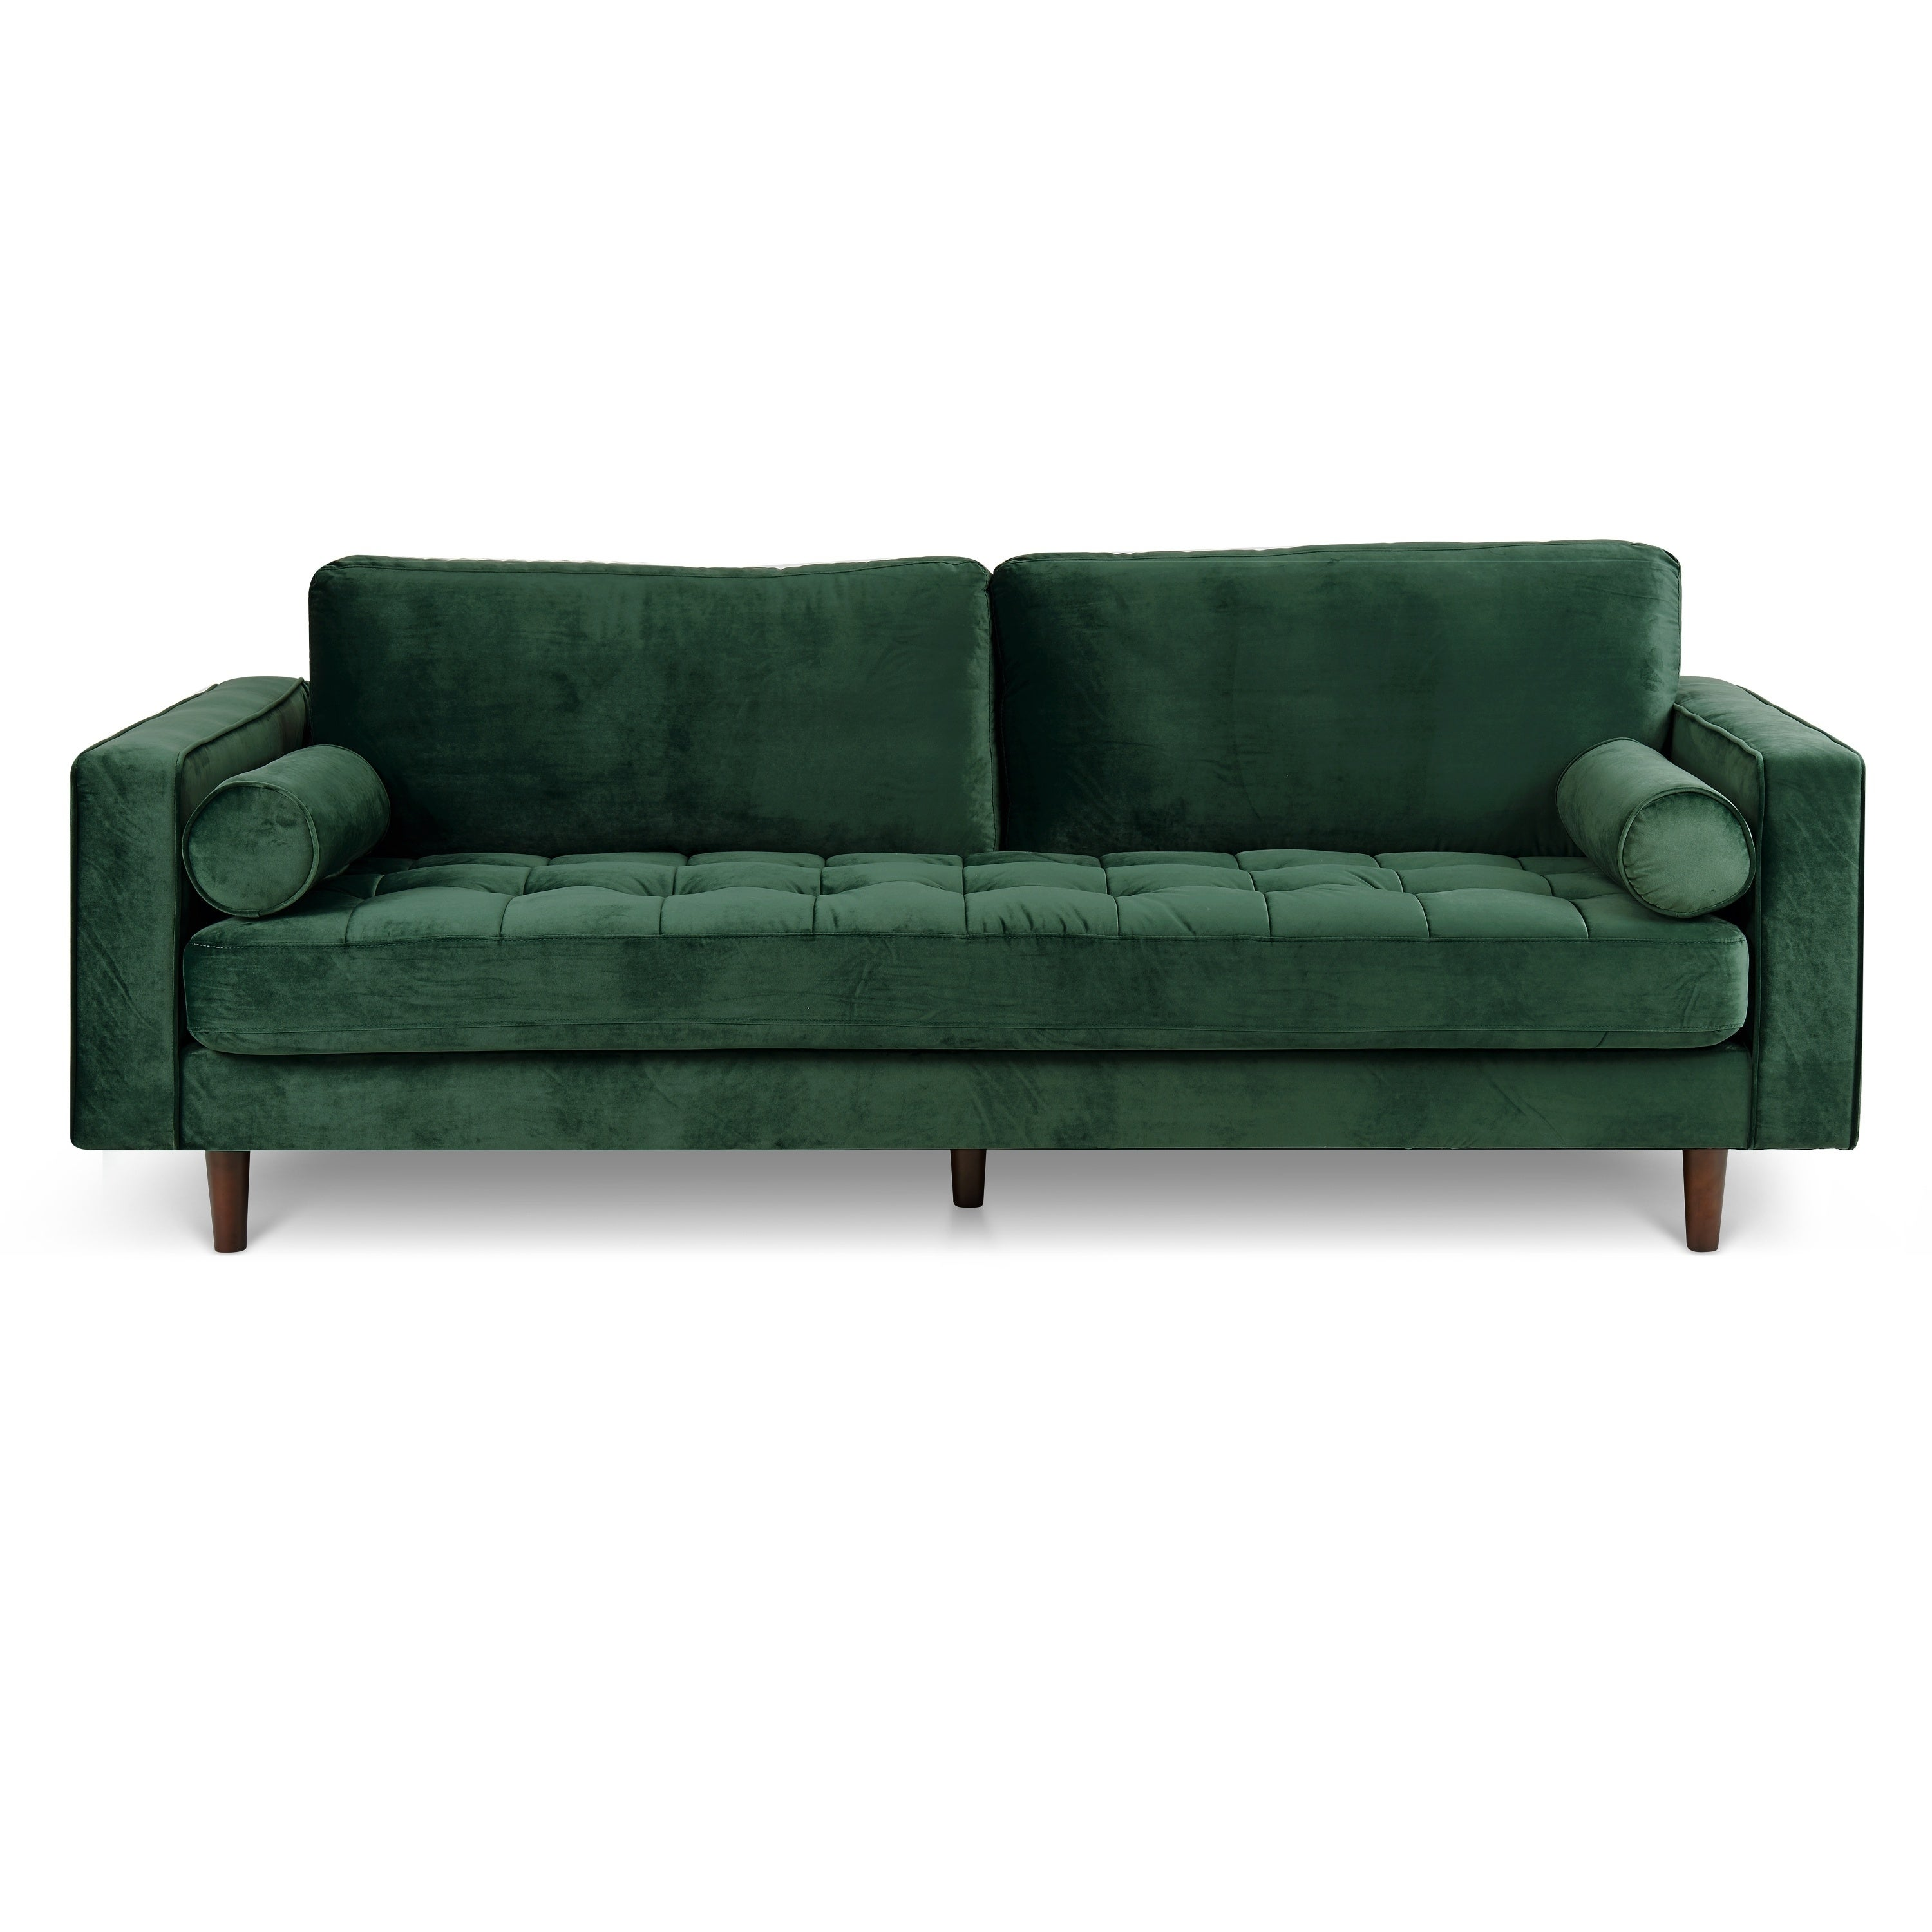 Green Sofas Couches Online At Our Best Living Room Furniture Deals